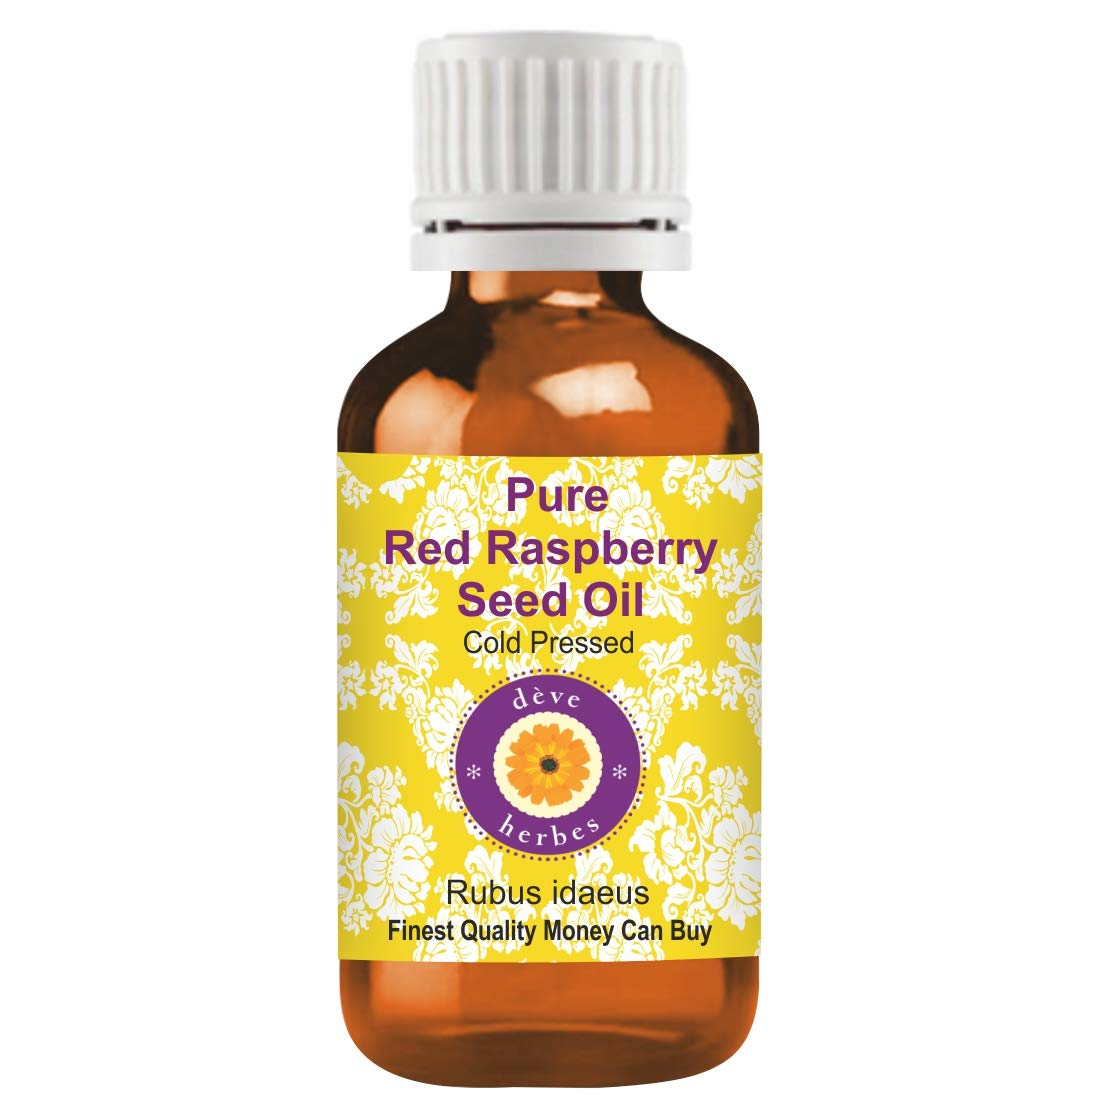 Deve Herbes Pure Red Raspberry Seed Oil (Rubus idaeus) 100% Natural Therapeutic Grade Cold Pressed 200ml (6.76 oz)